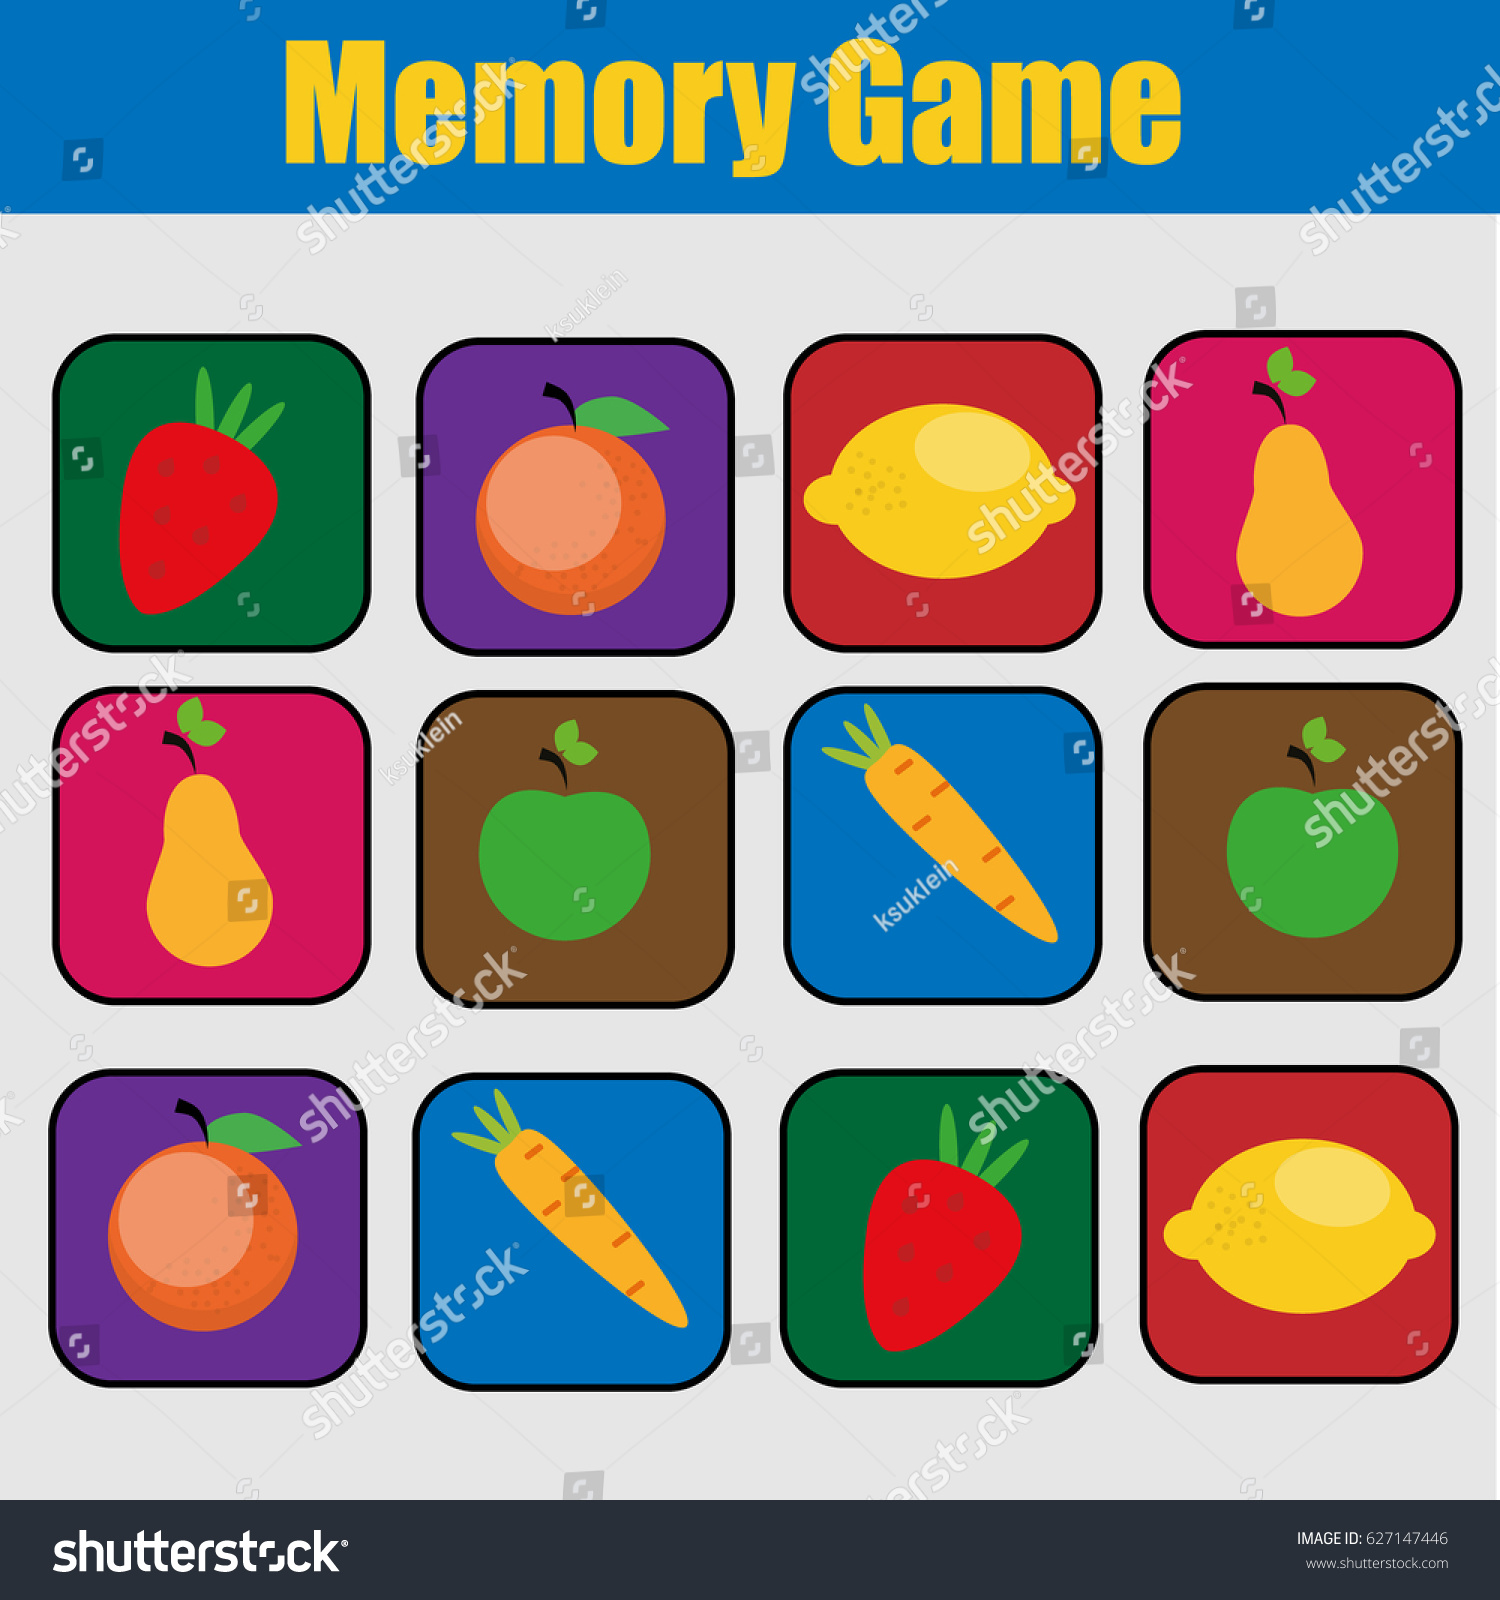 Uncategorized Memory Pairs educational children game kids activity memory stock illustration friuts and vegetables theme find